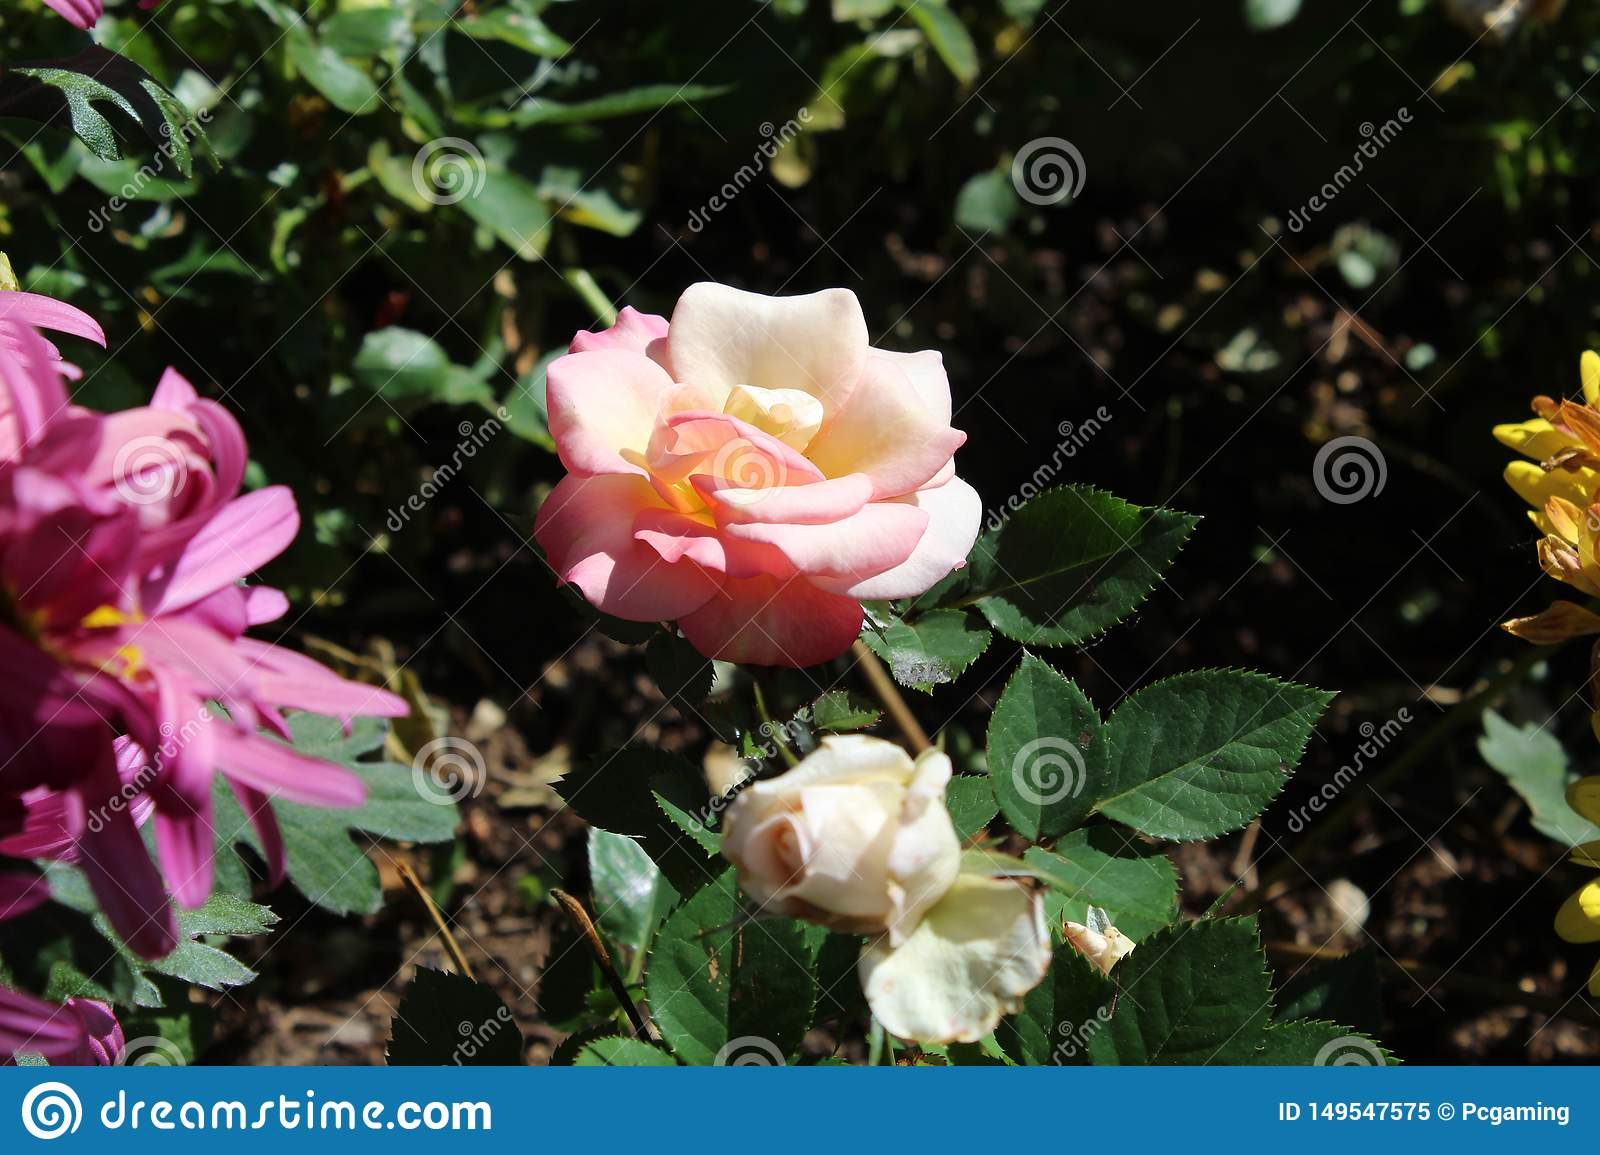 Pink and white flower close up a